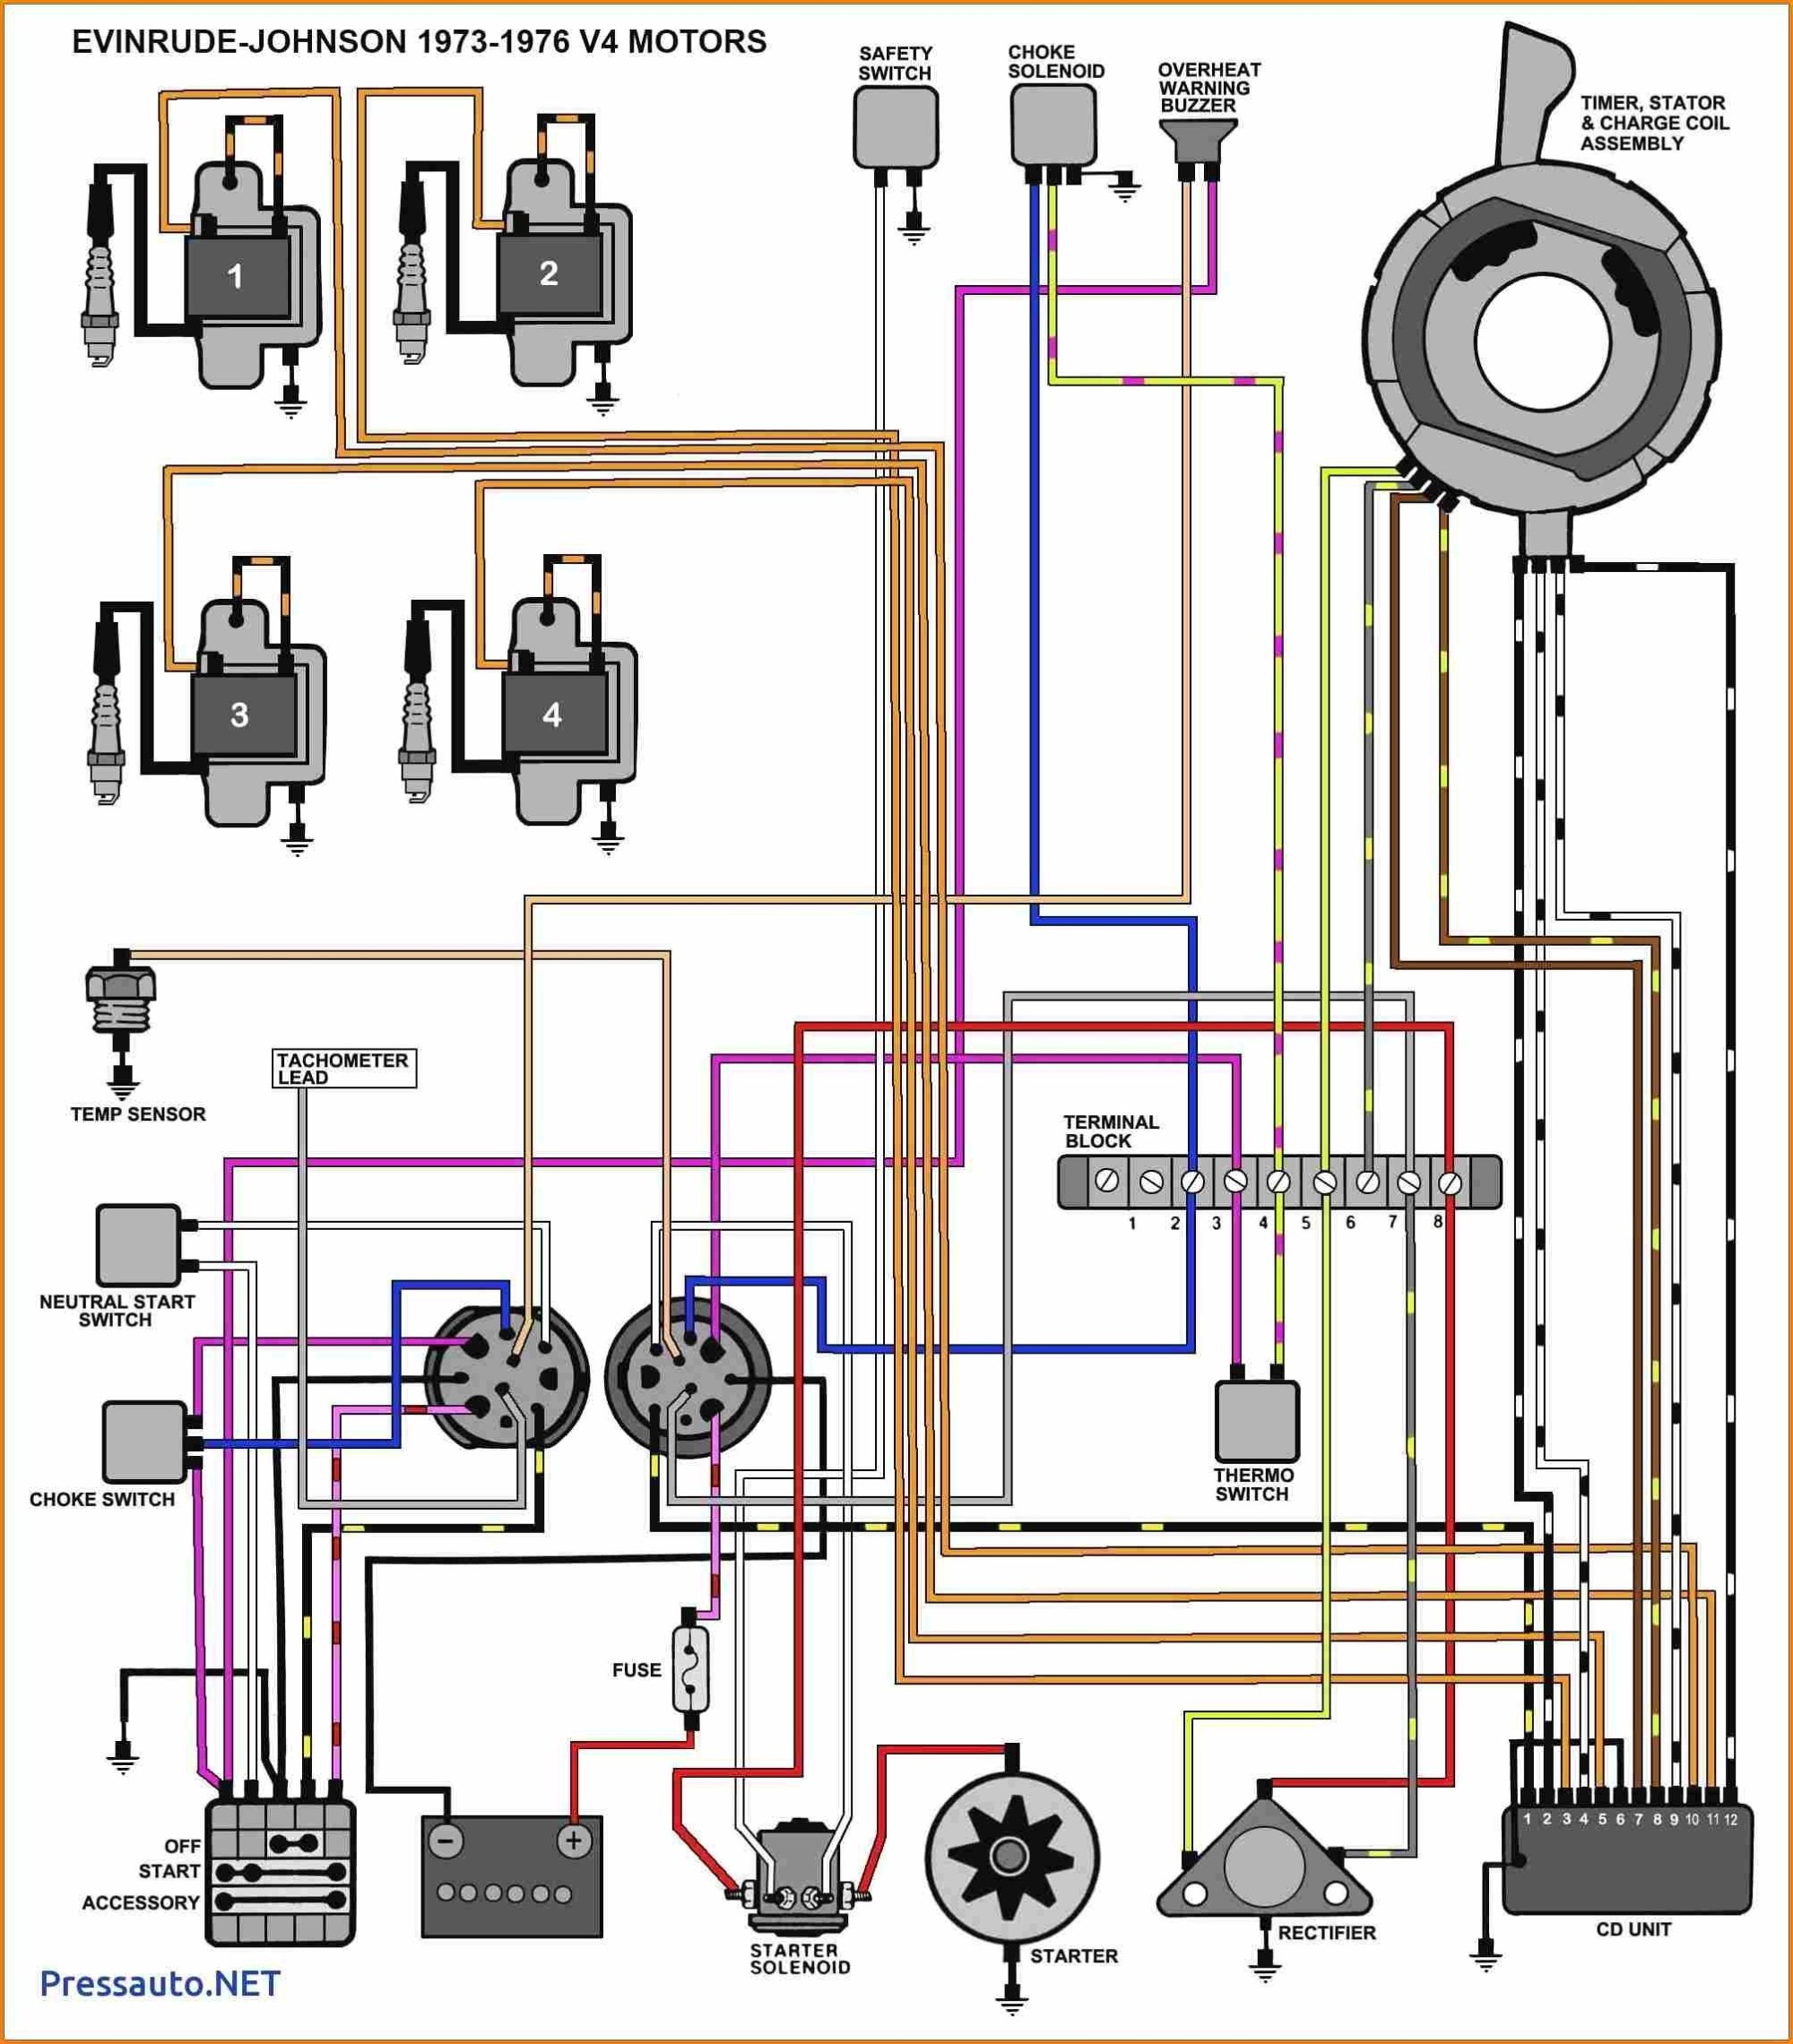 hight resolution of 1995 mercury tracer engine diagram wiring diagram1997 evinrude wiring diagram wiring diagram1997 evinrude wiring diagram